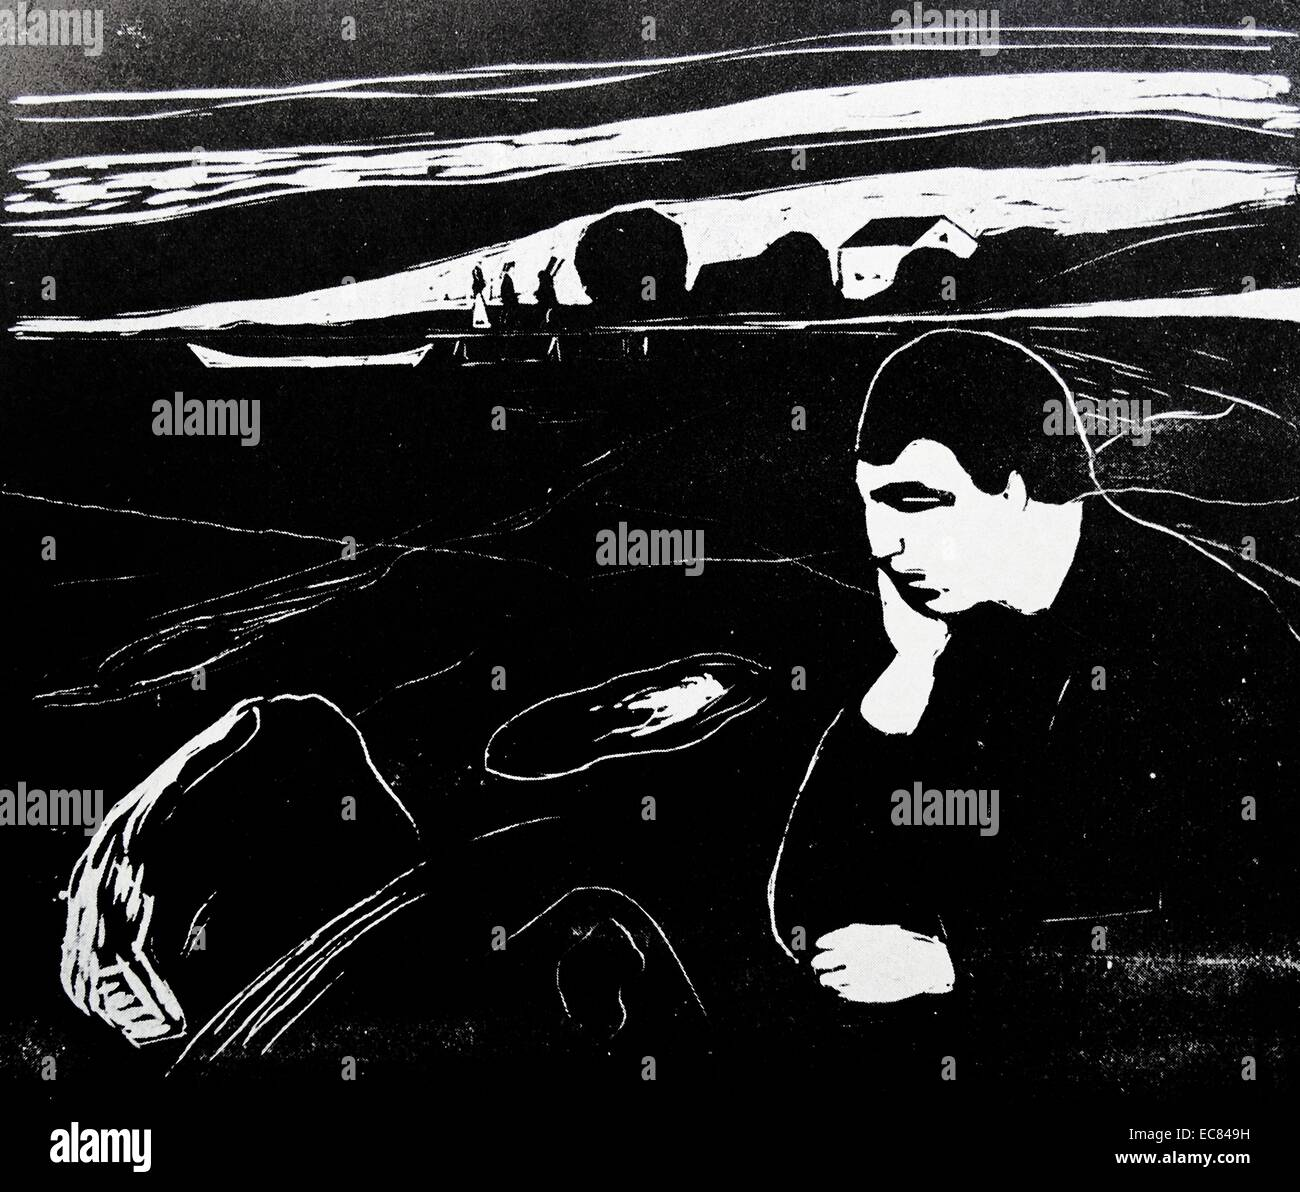 Work entitled Evening, Melancholy Is Shining by the Norwegian artist Edvard Munch (1863-1944). This work was produced - Stock Image